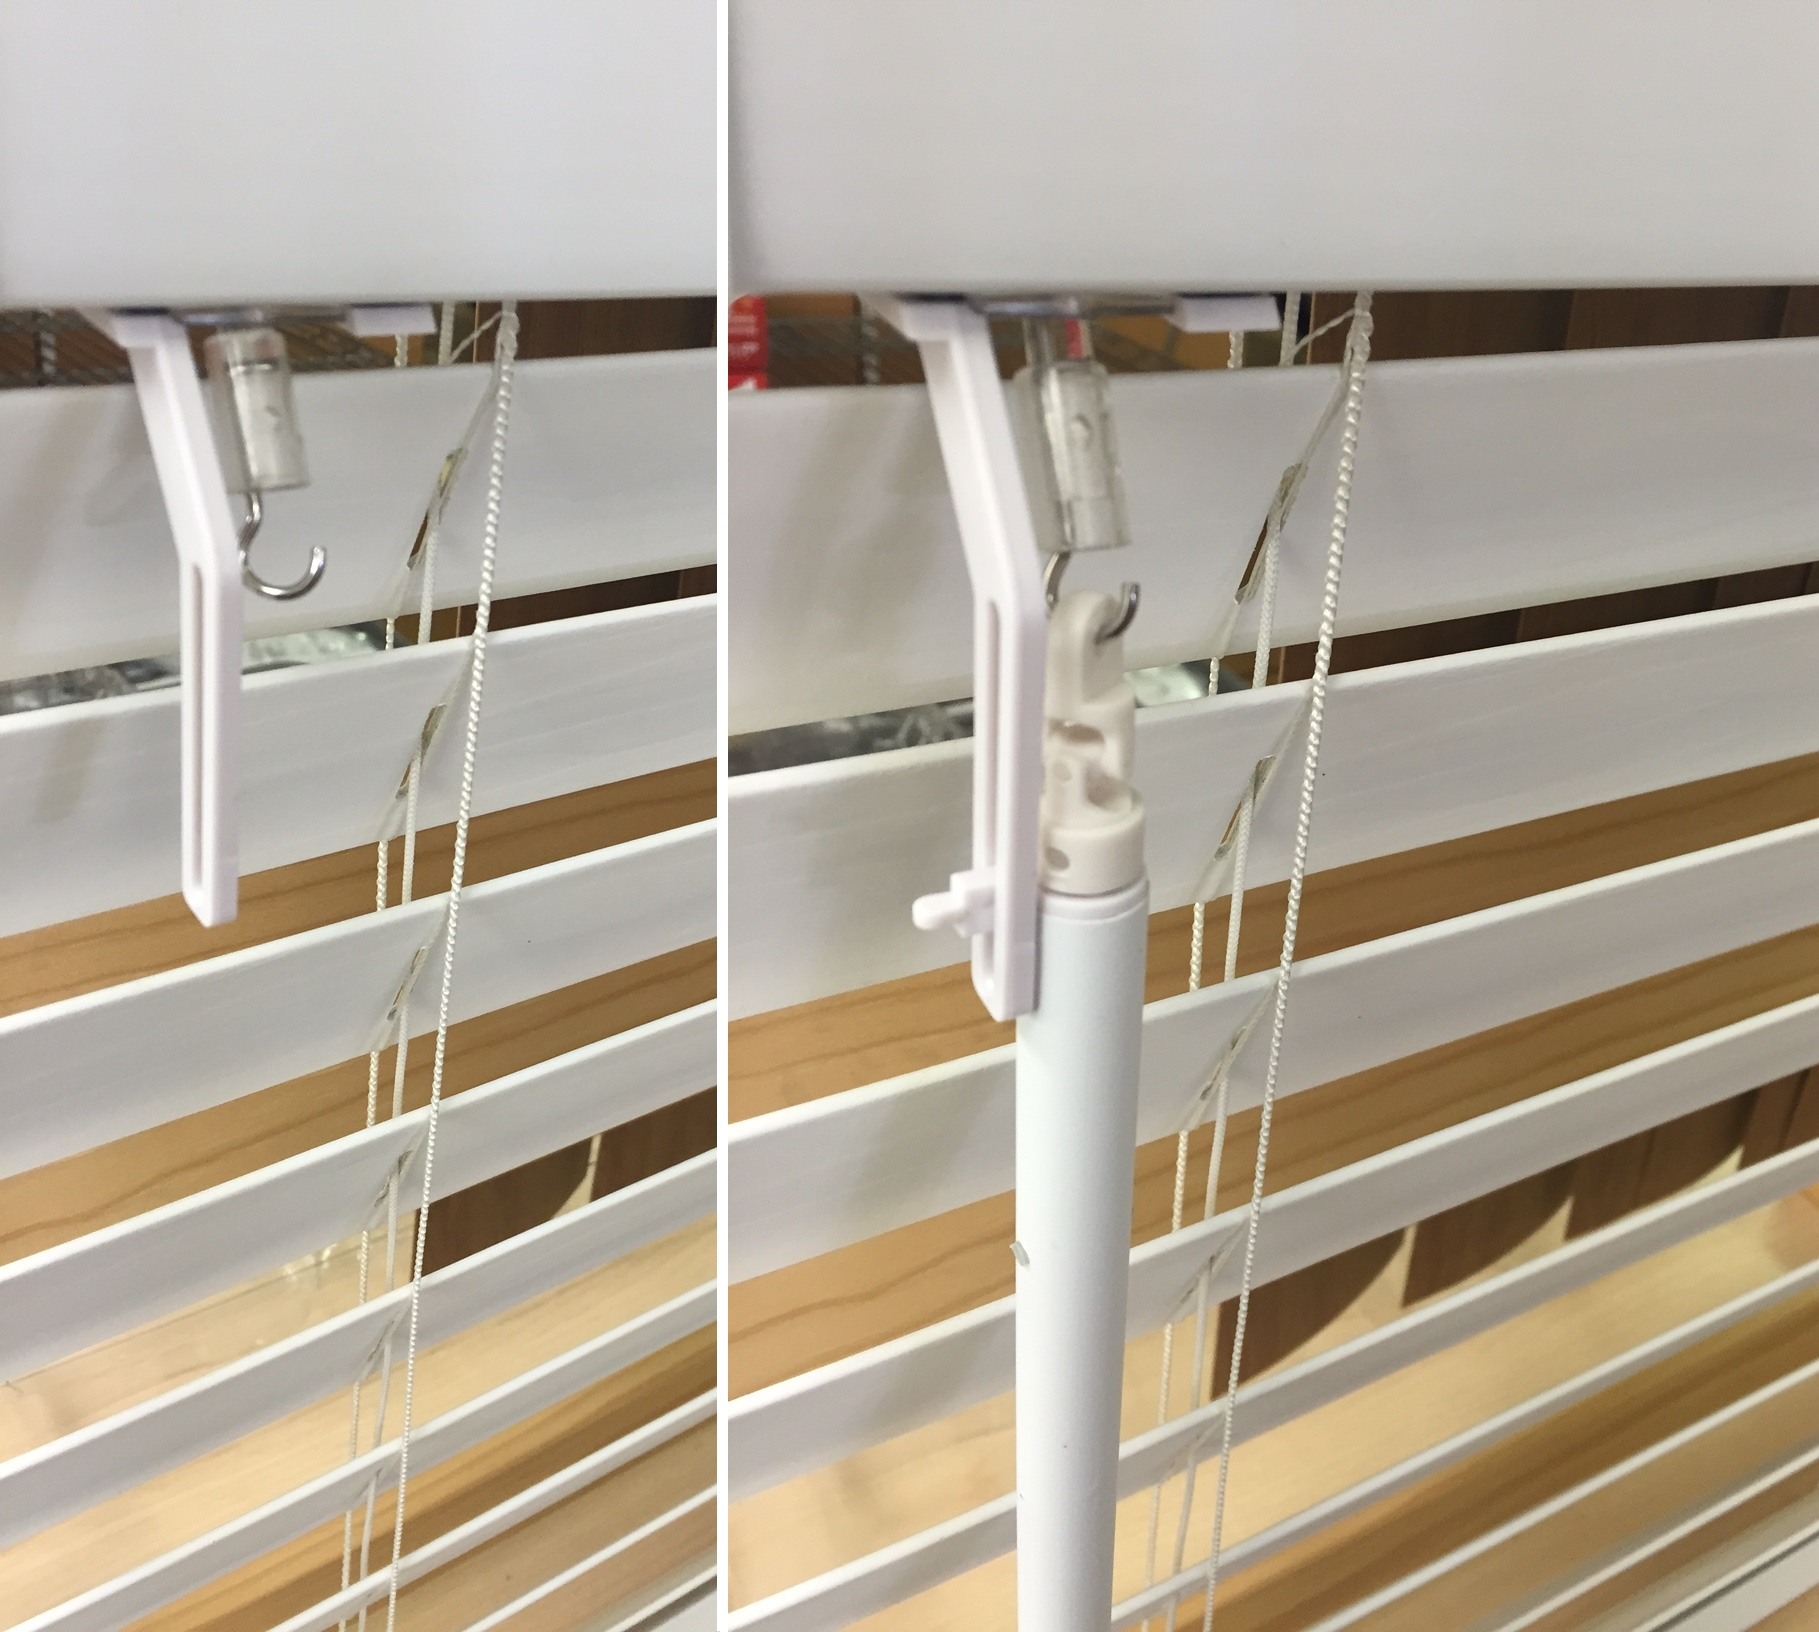 blinds-horizontal-hook.jpg